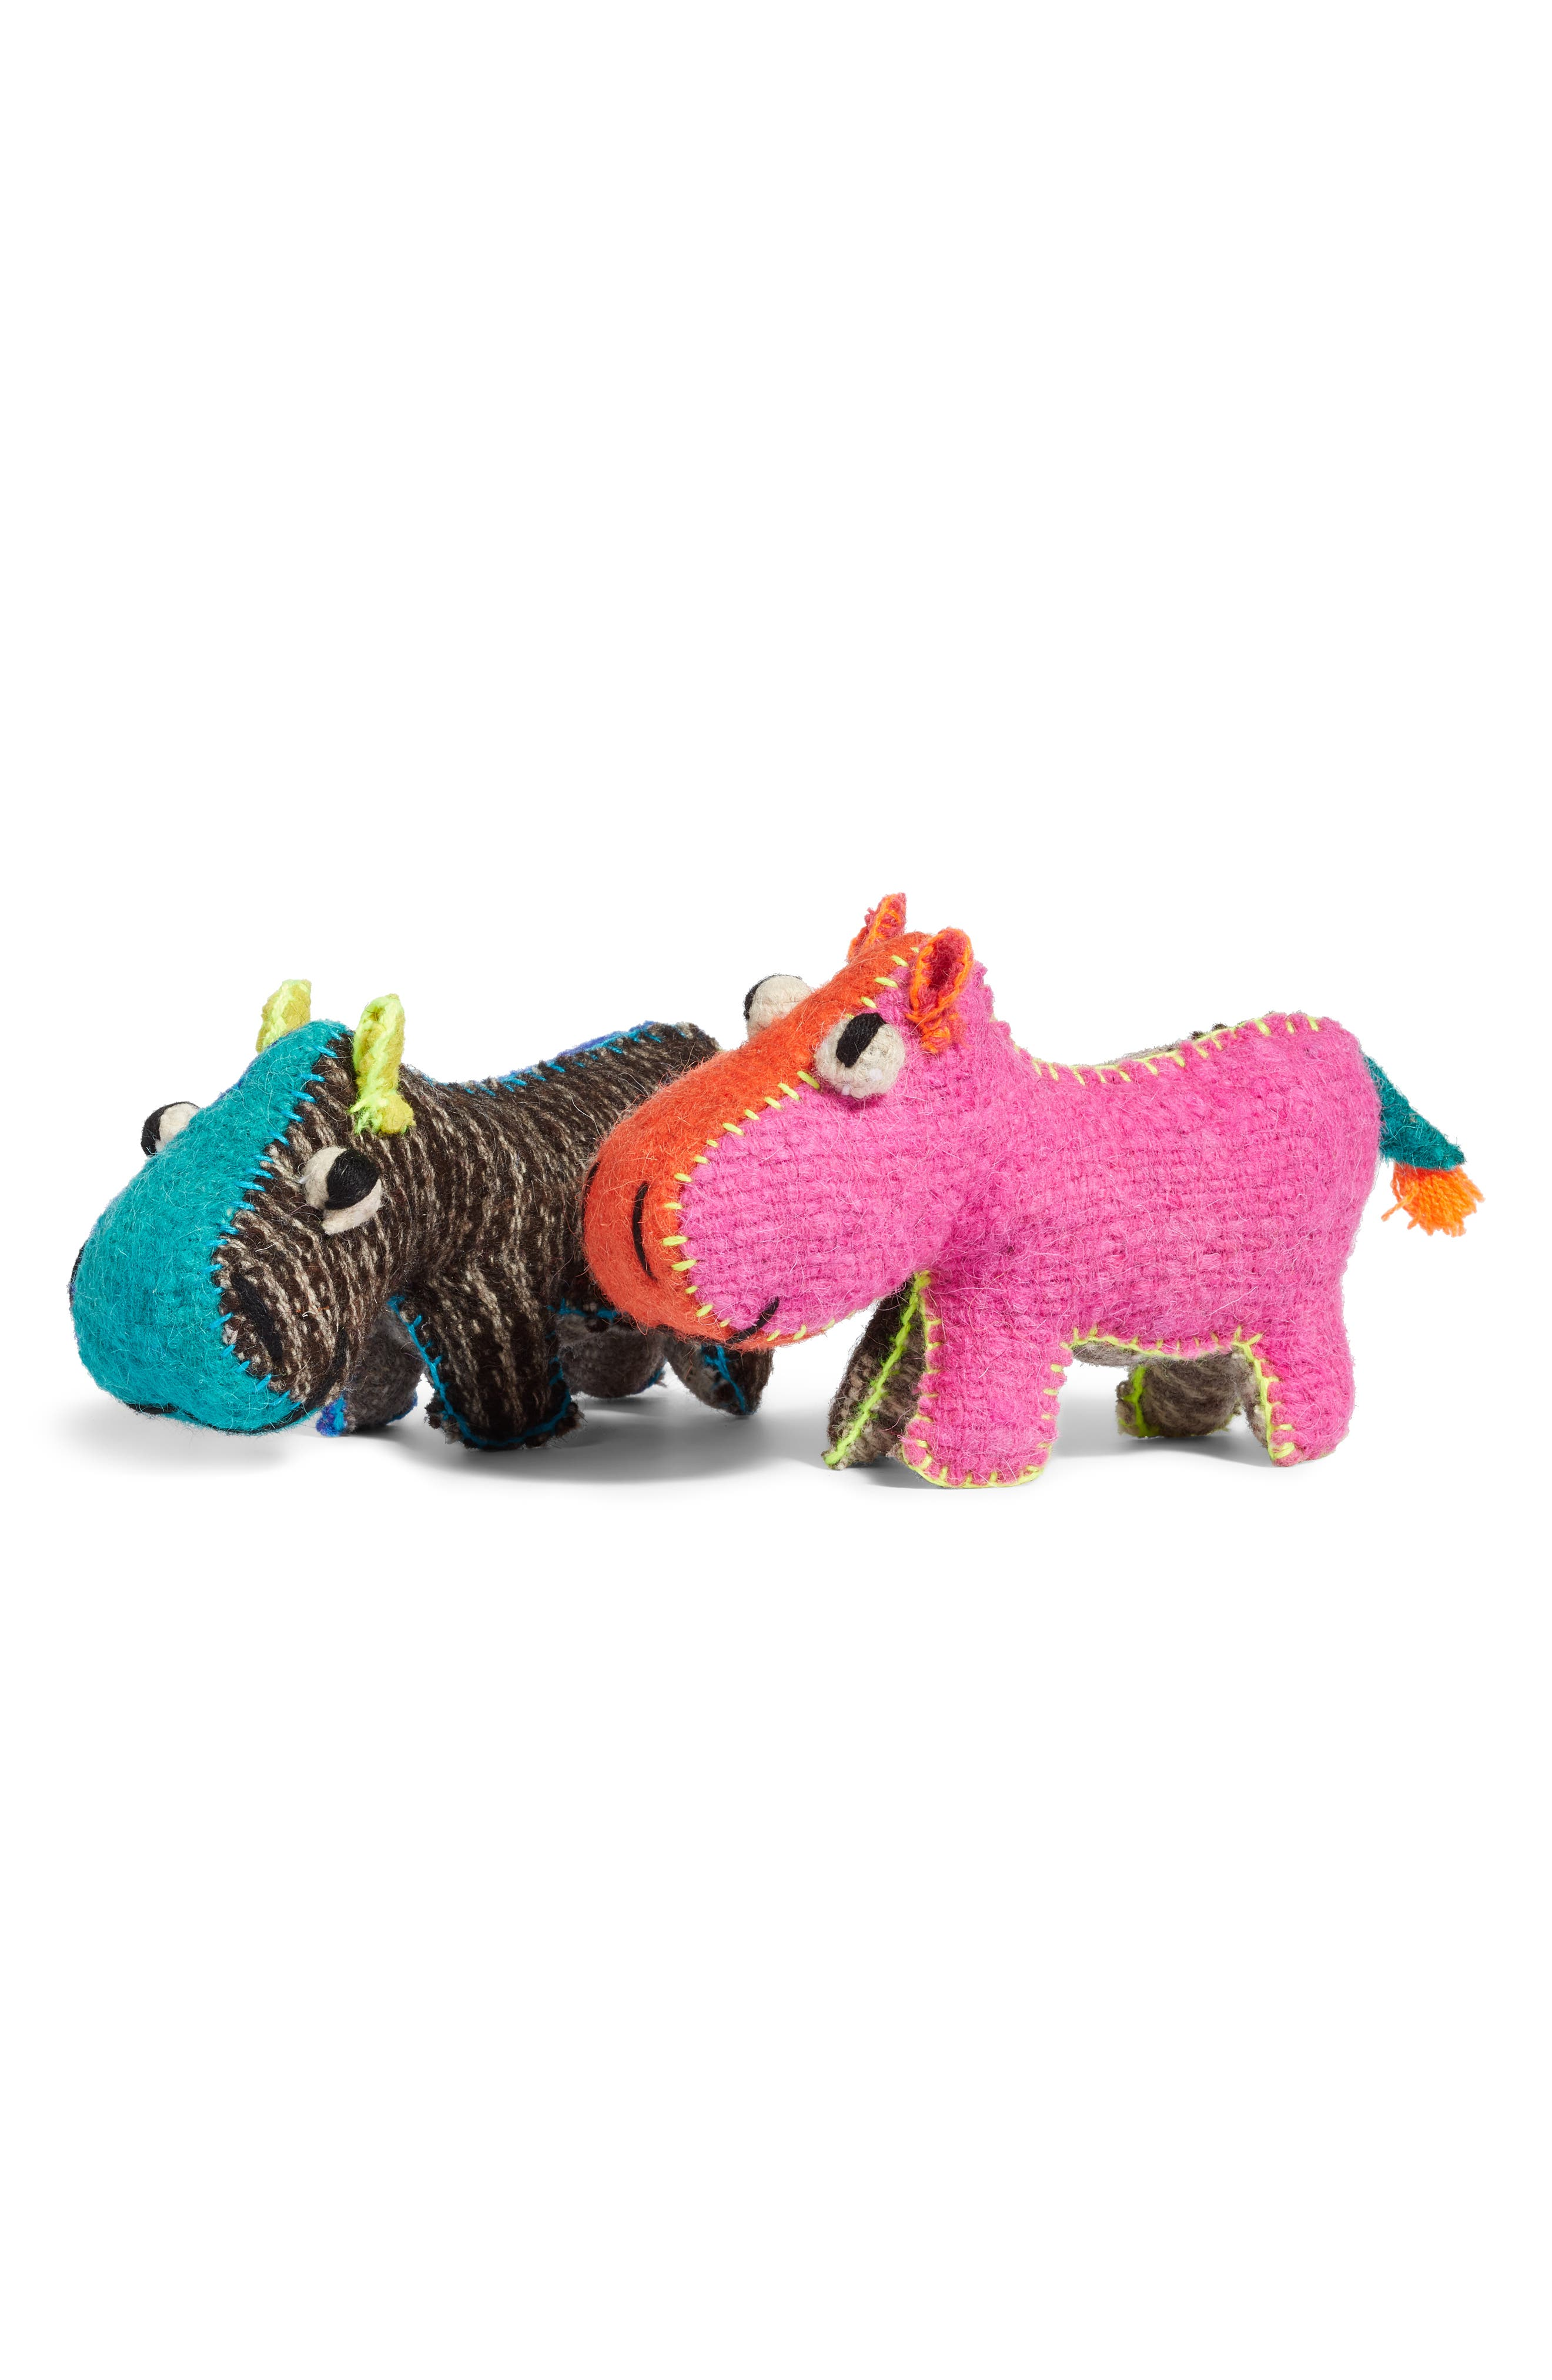 Hippo Stuffed Animal,                             Alternate thumbnail 3, color,                             960